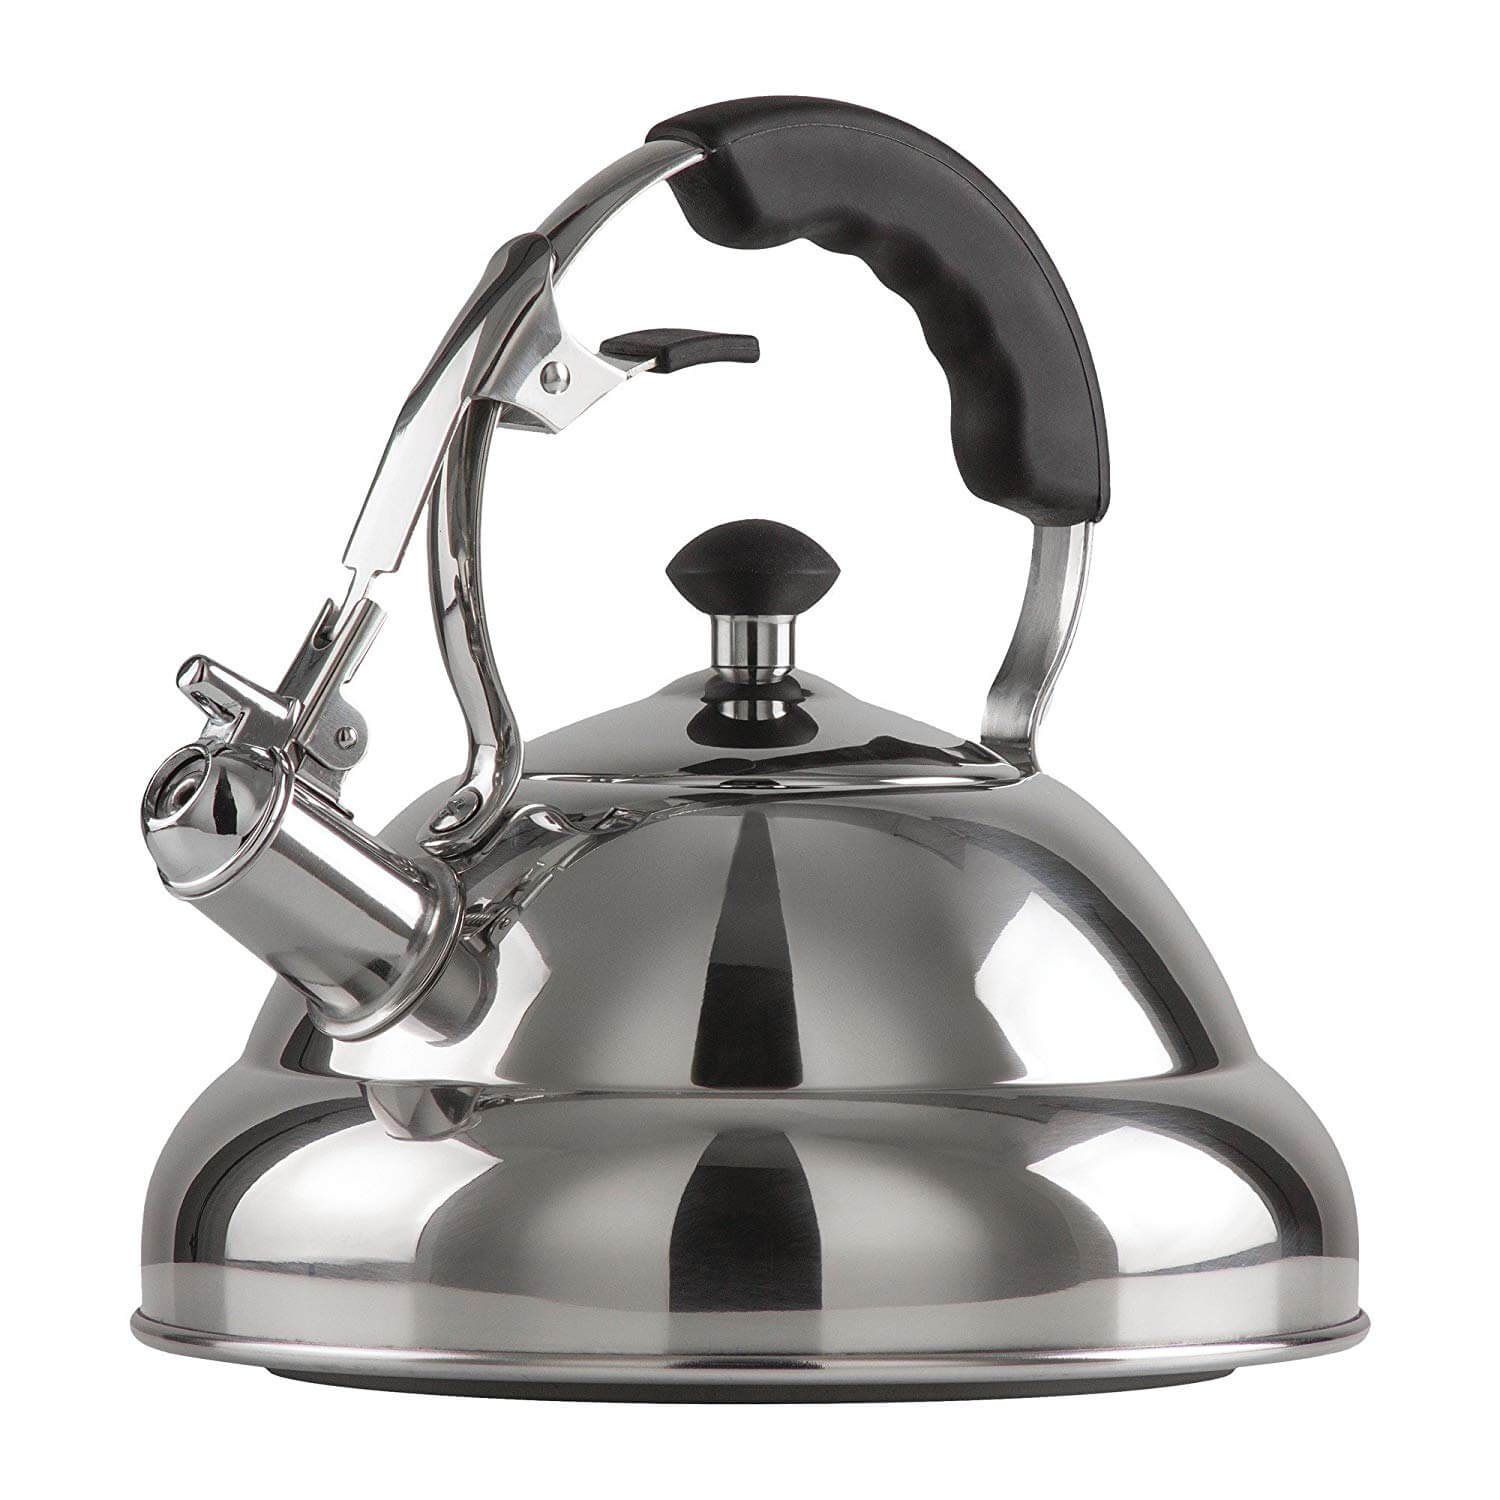 Chef's Secret Tea Kettle